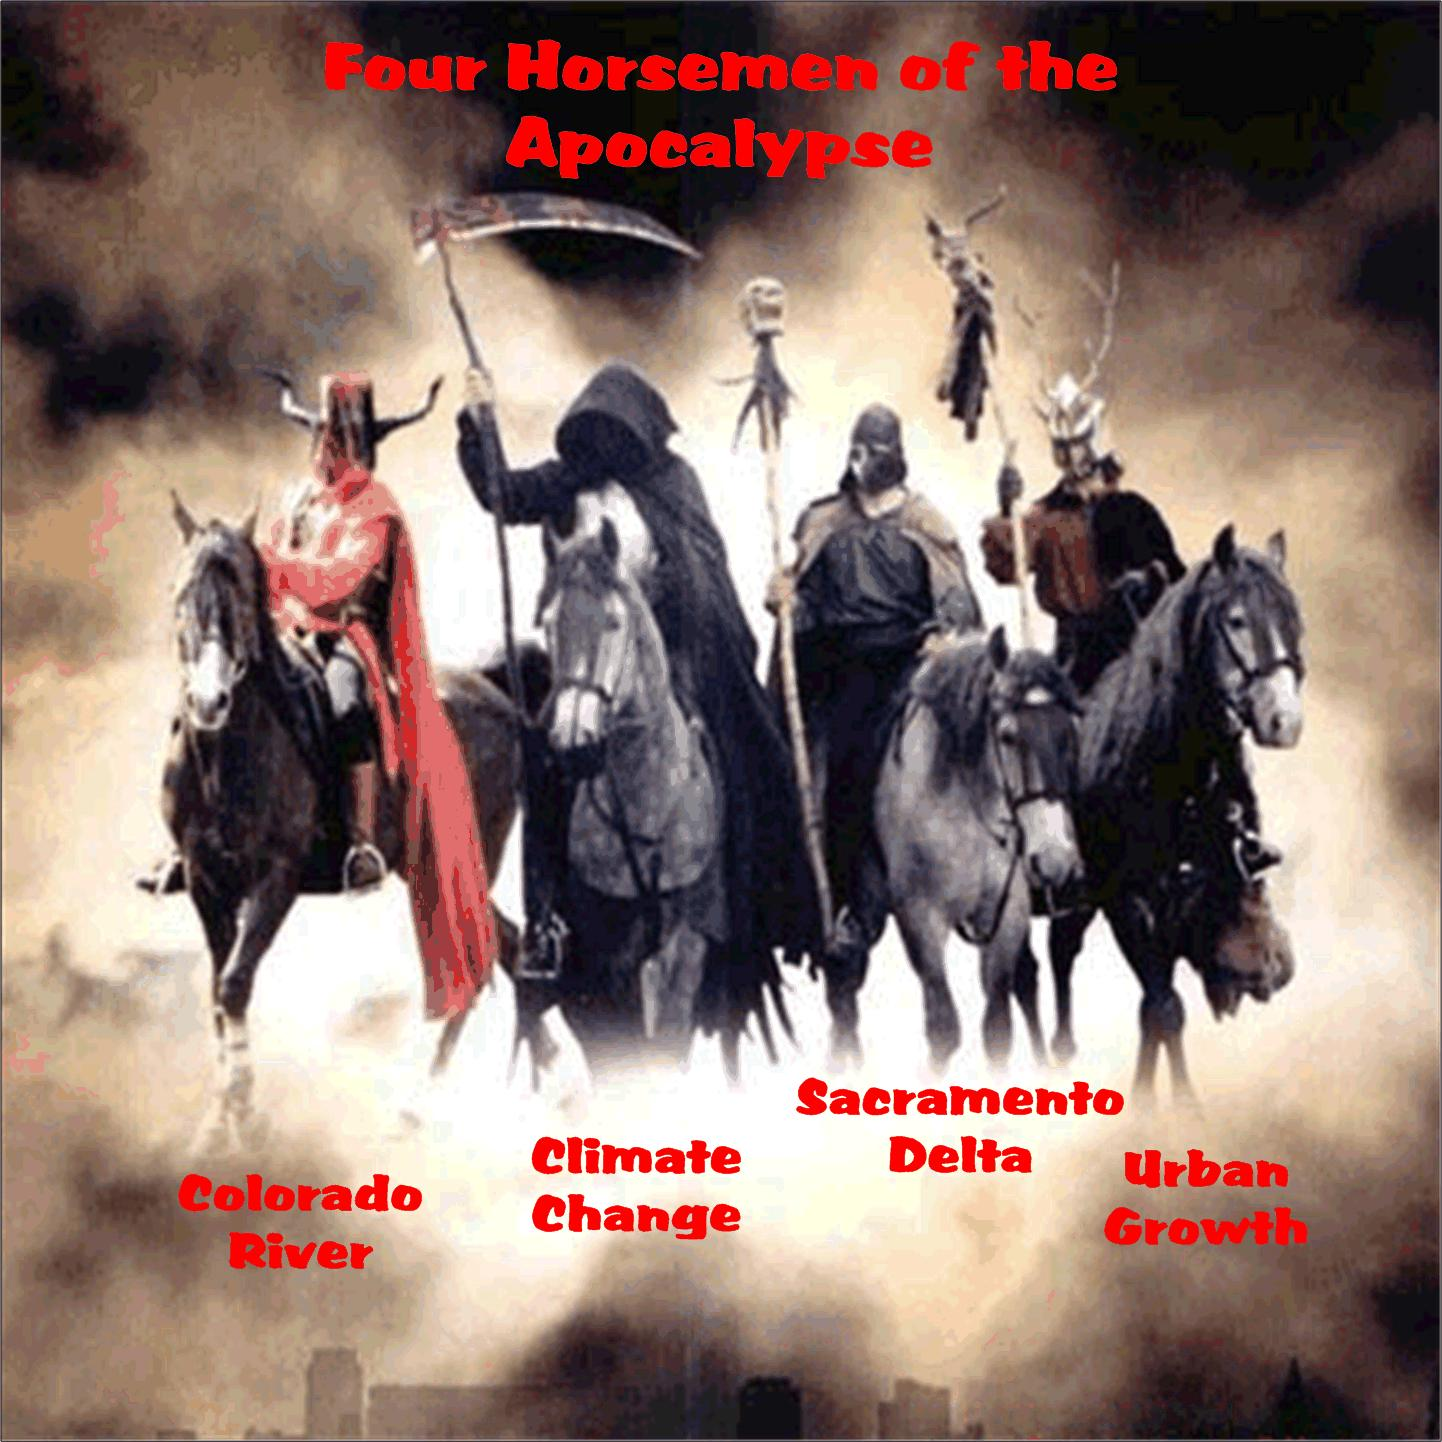 names of the 4 horsemen k--k club 2019